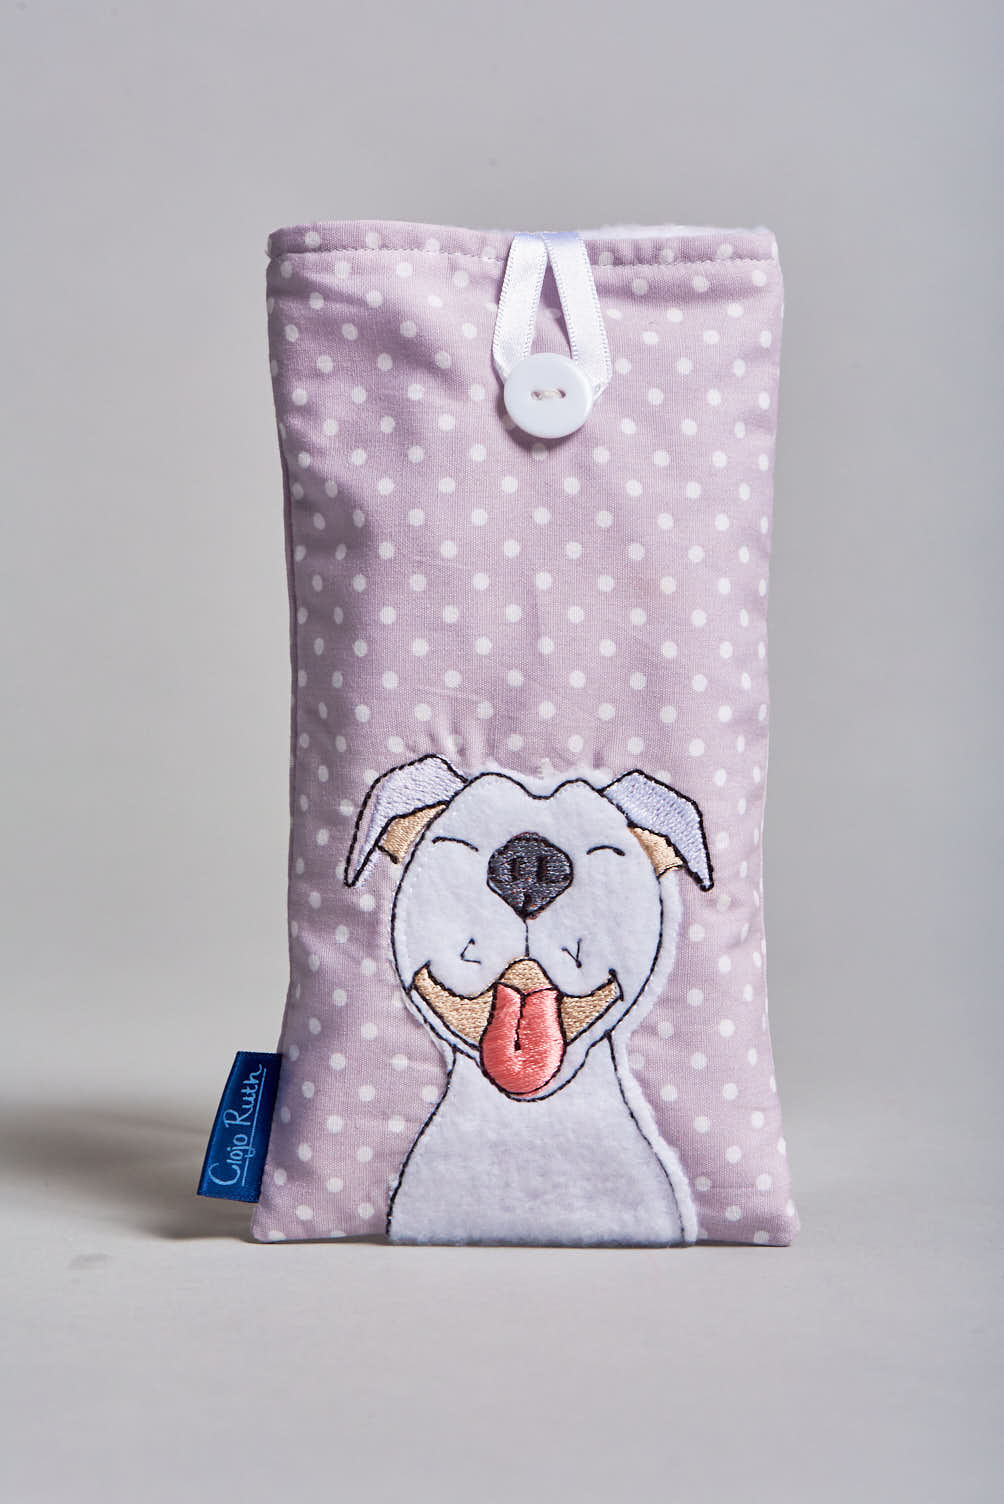 Clojo Eyeglass Case - Staffy Staffie